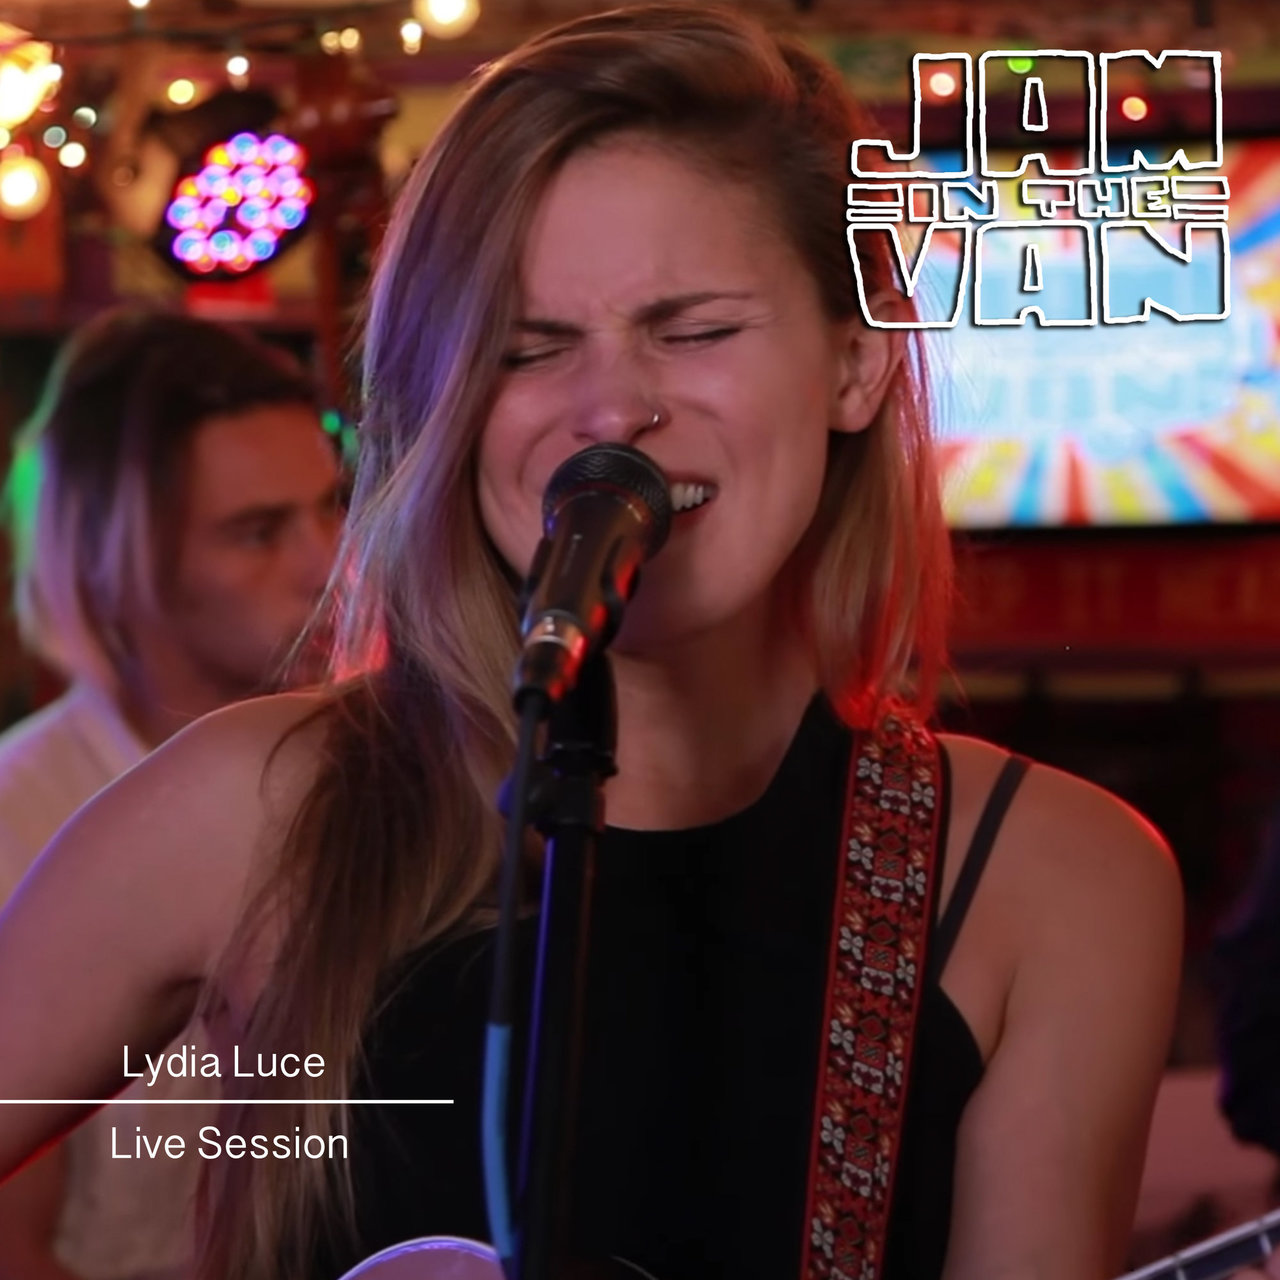 Jam in the Van - Lydia Luce (Live Session)